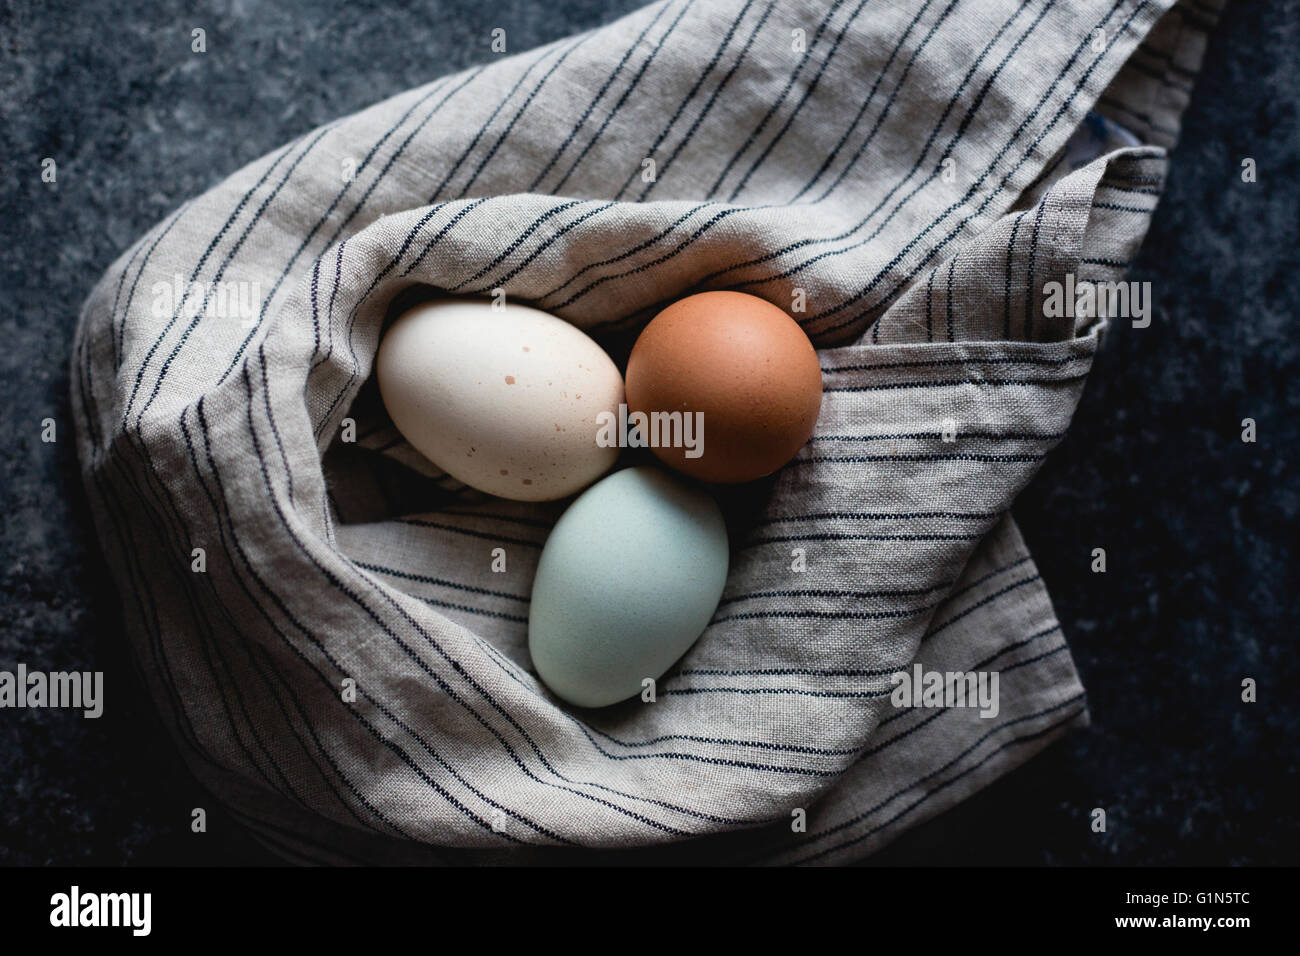 Various colored eggs - Stock Image